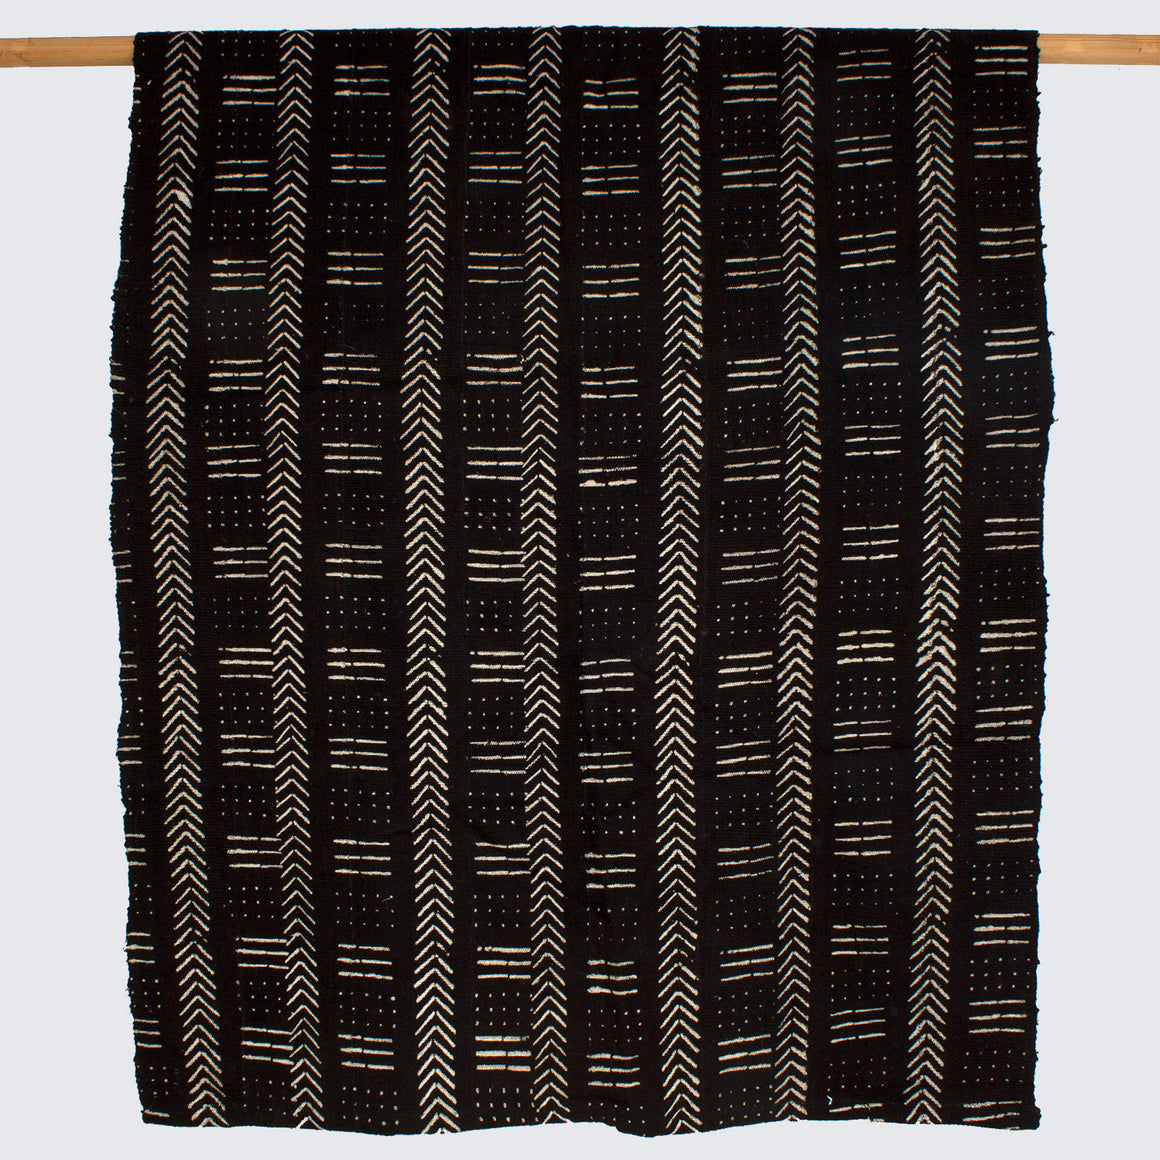 West African Bògòlanfini Mud Cloth 'Black Herringbone'